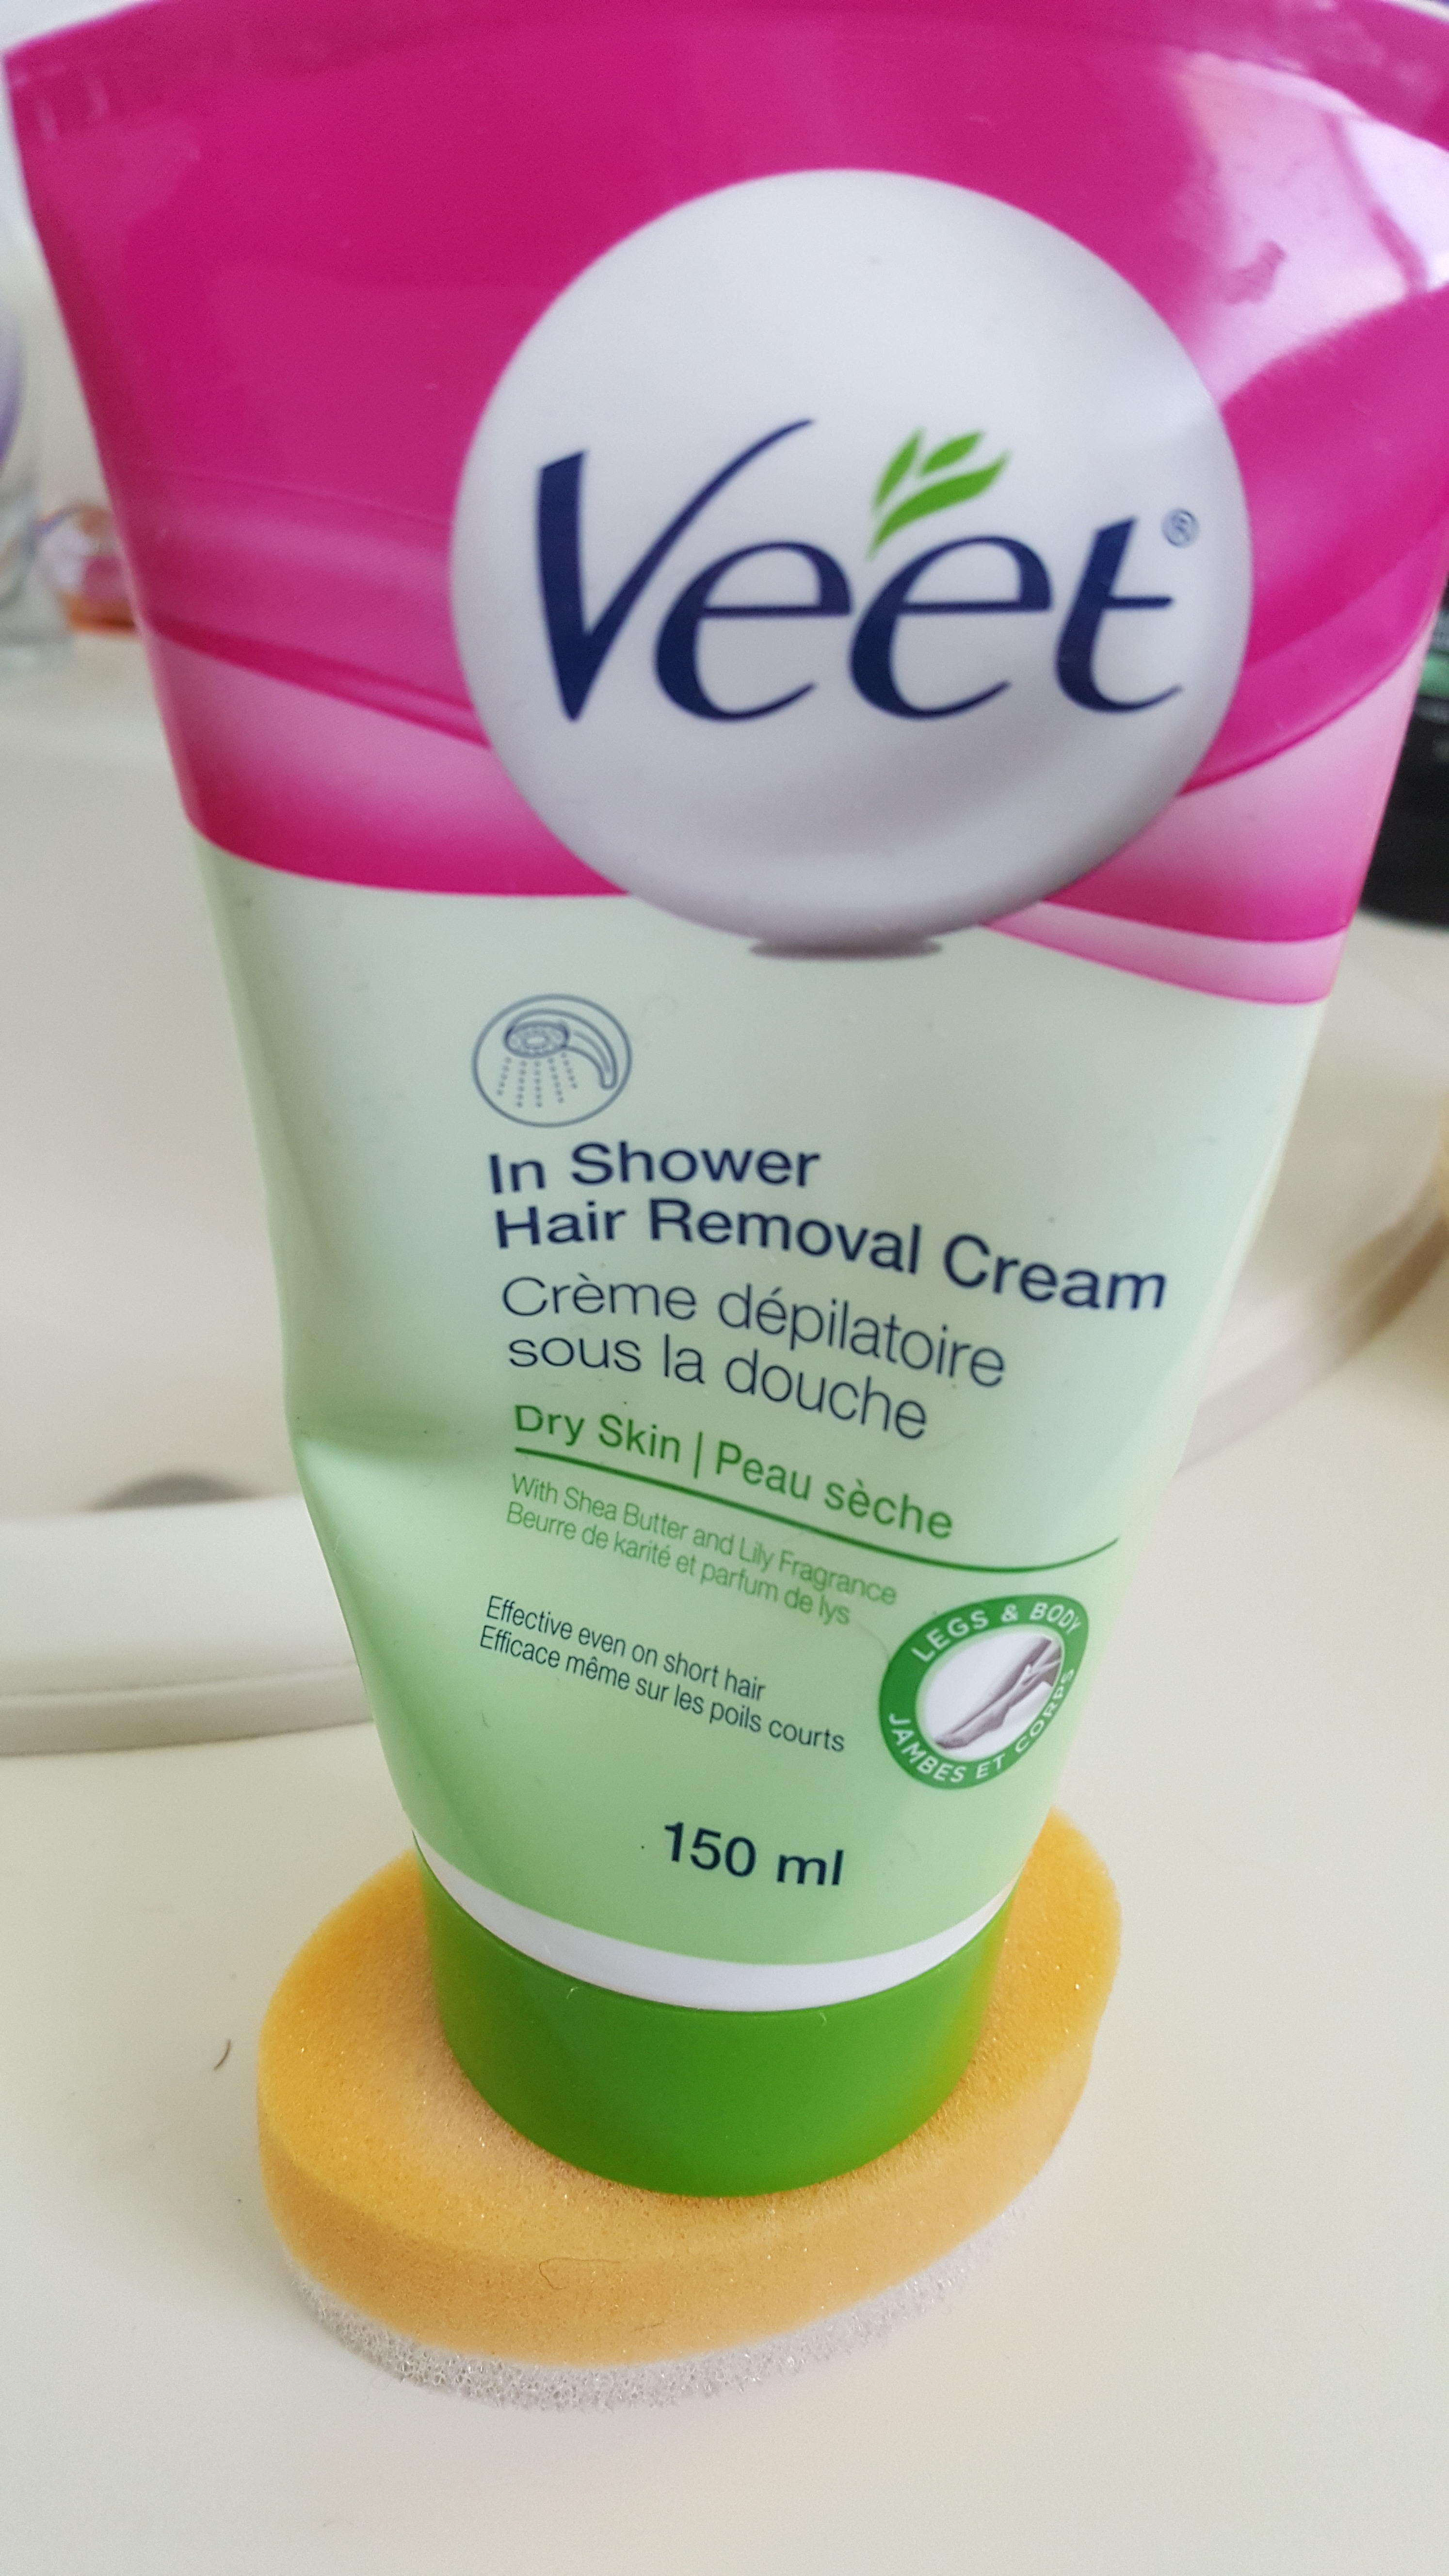 Veet In Shower Hair Removal Cream Reviews In Hair Removal